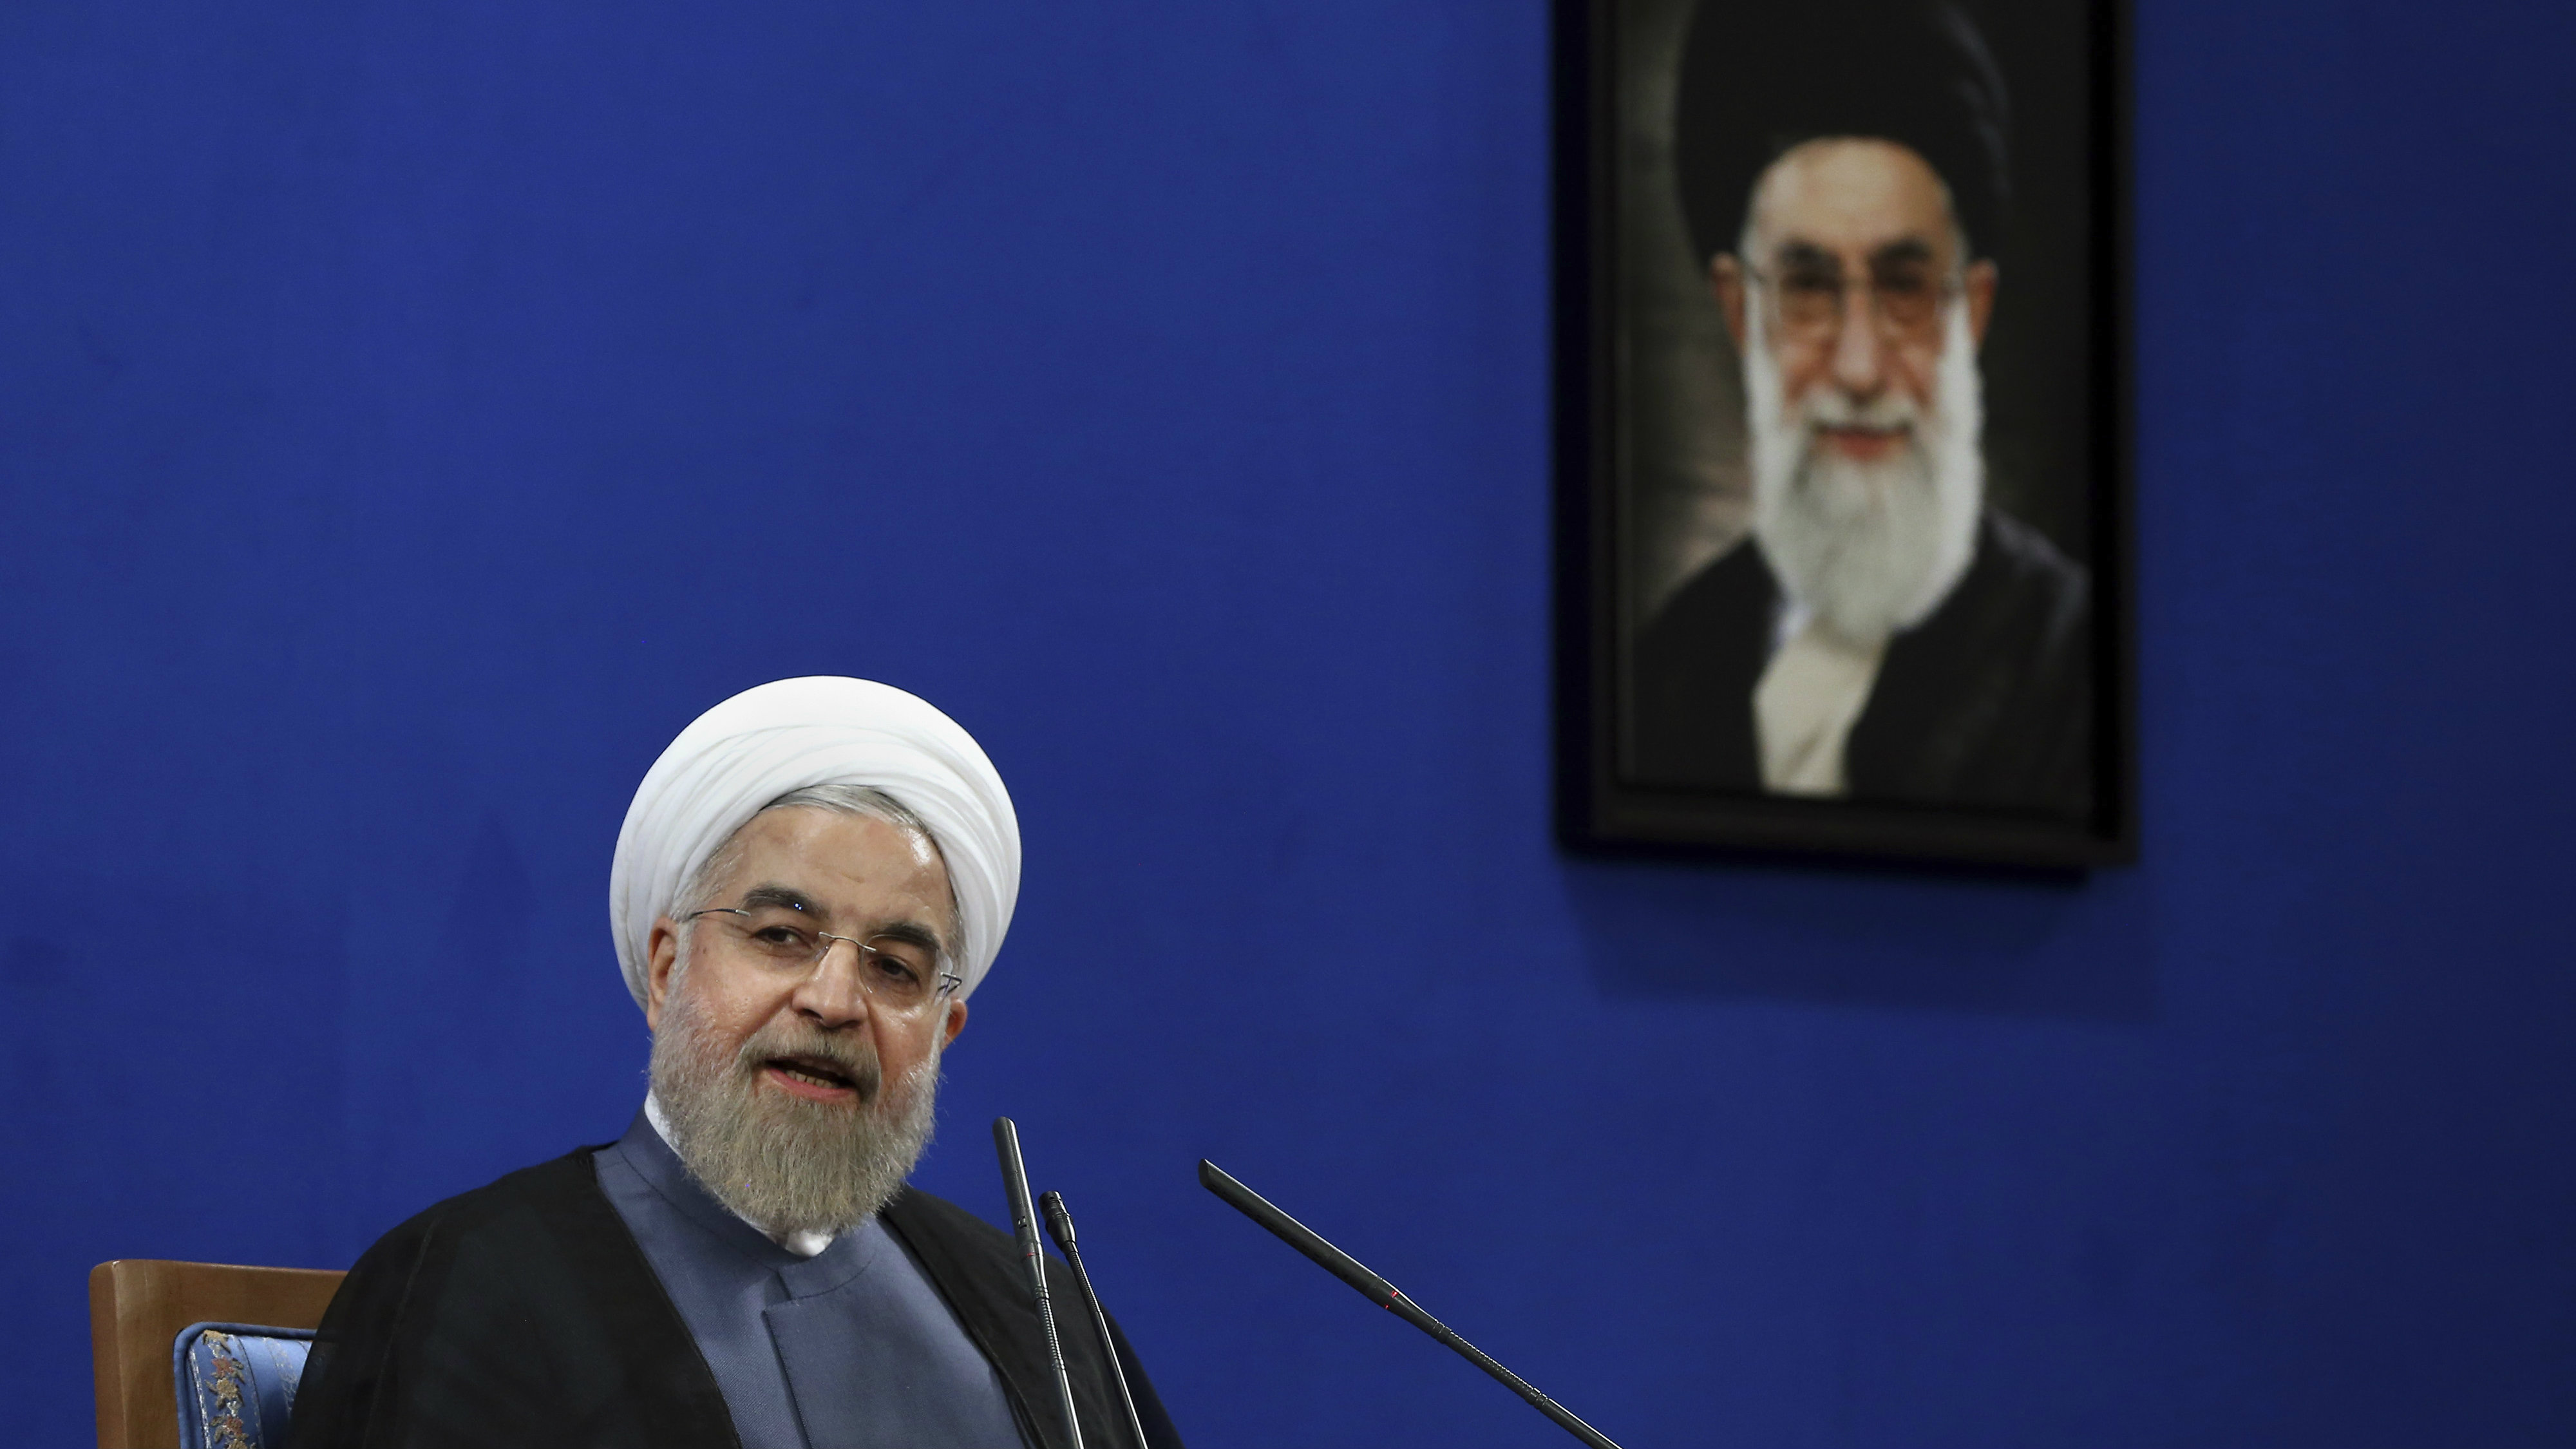 ranian President Hassan Rouhani speaks during a press conference on the second anniversary of his election, in Tehran, Iran, Saturday, June 13, 2015.